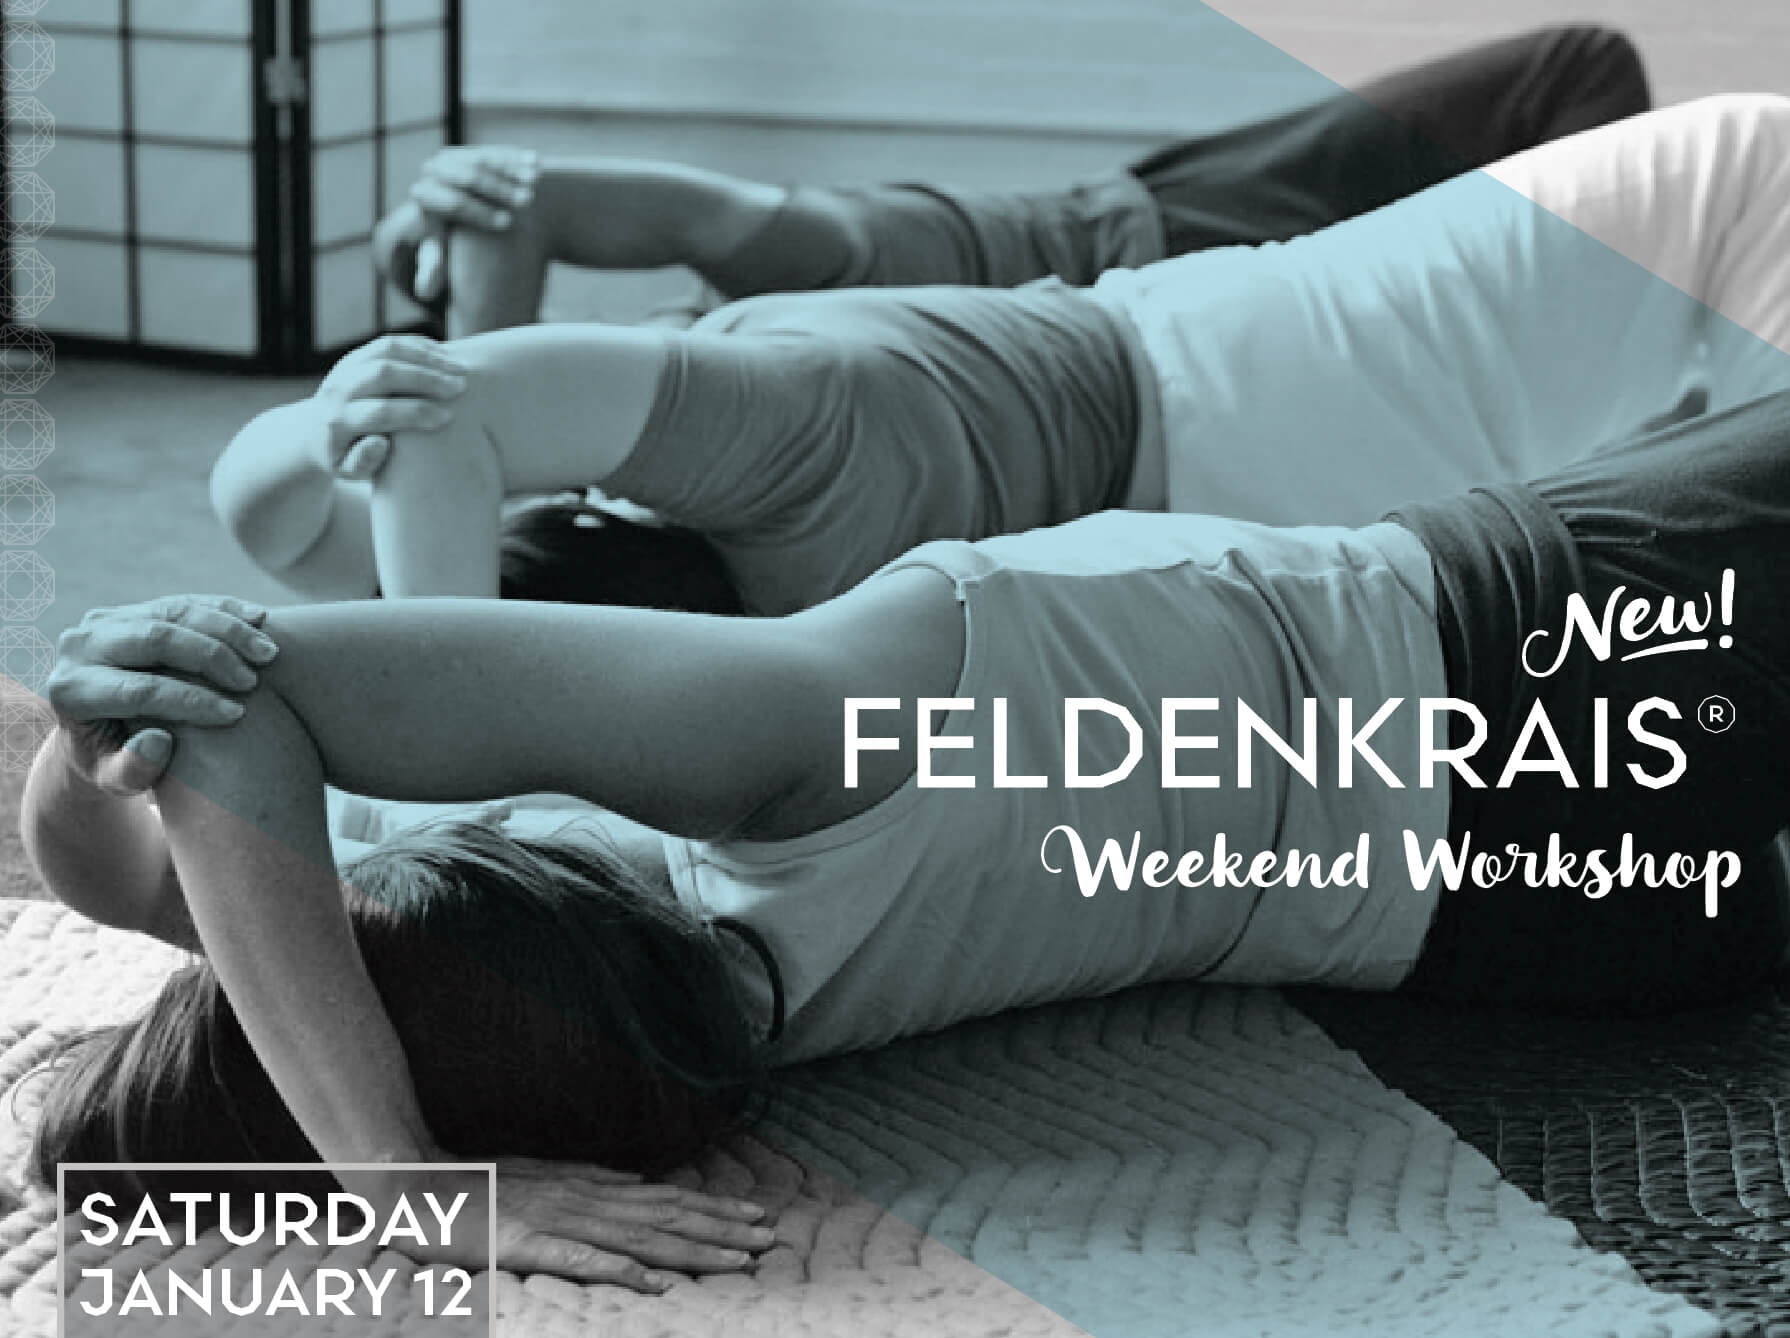 Feldenkrais®: Weekend Workshop